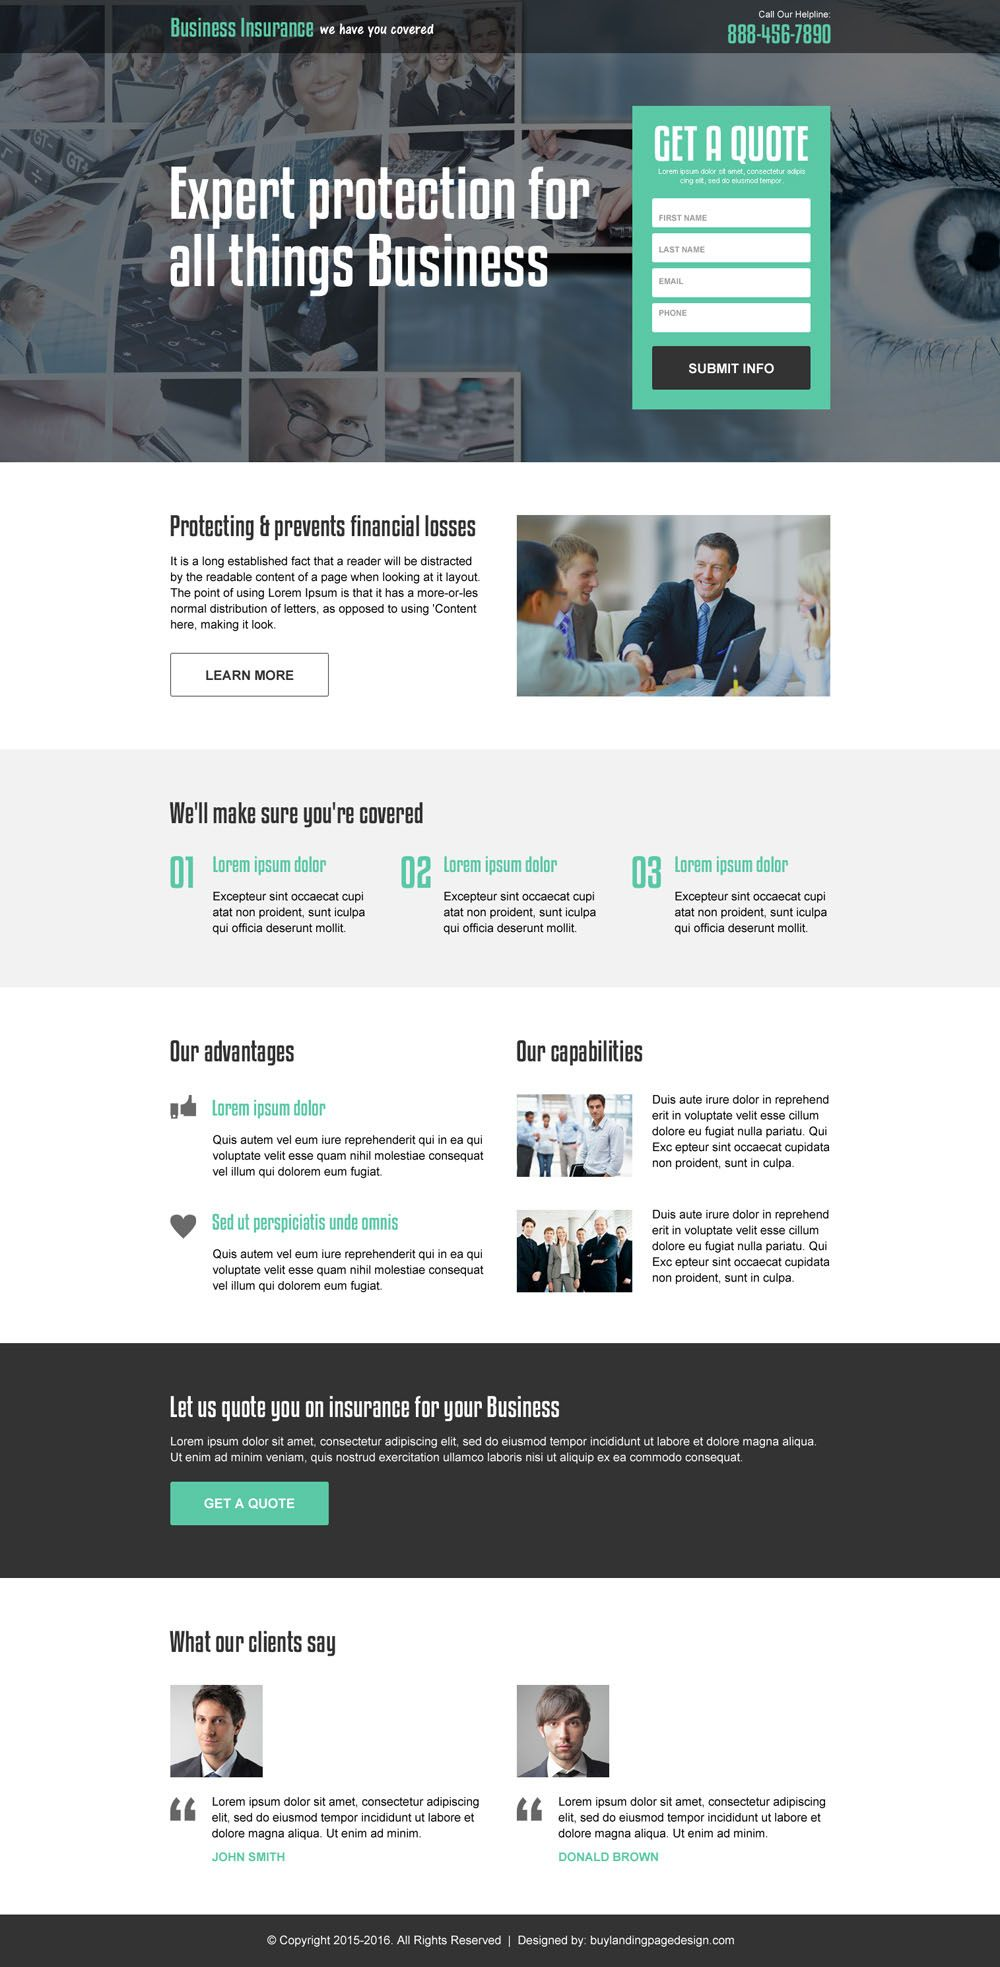 Business Insurance Landing Pages For Capturing High Quality Leads